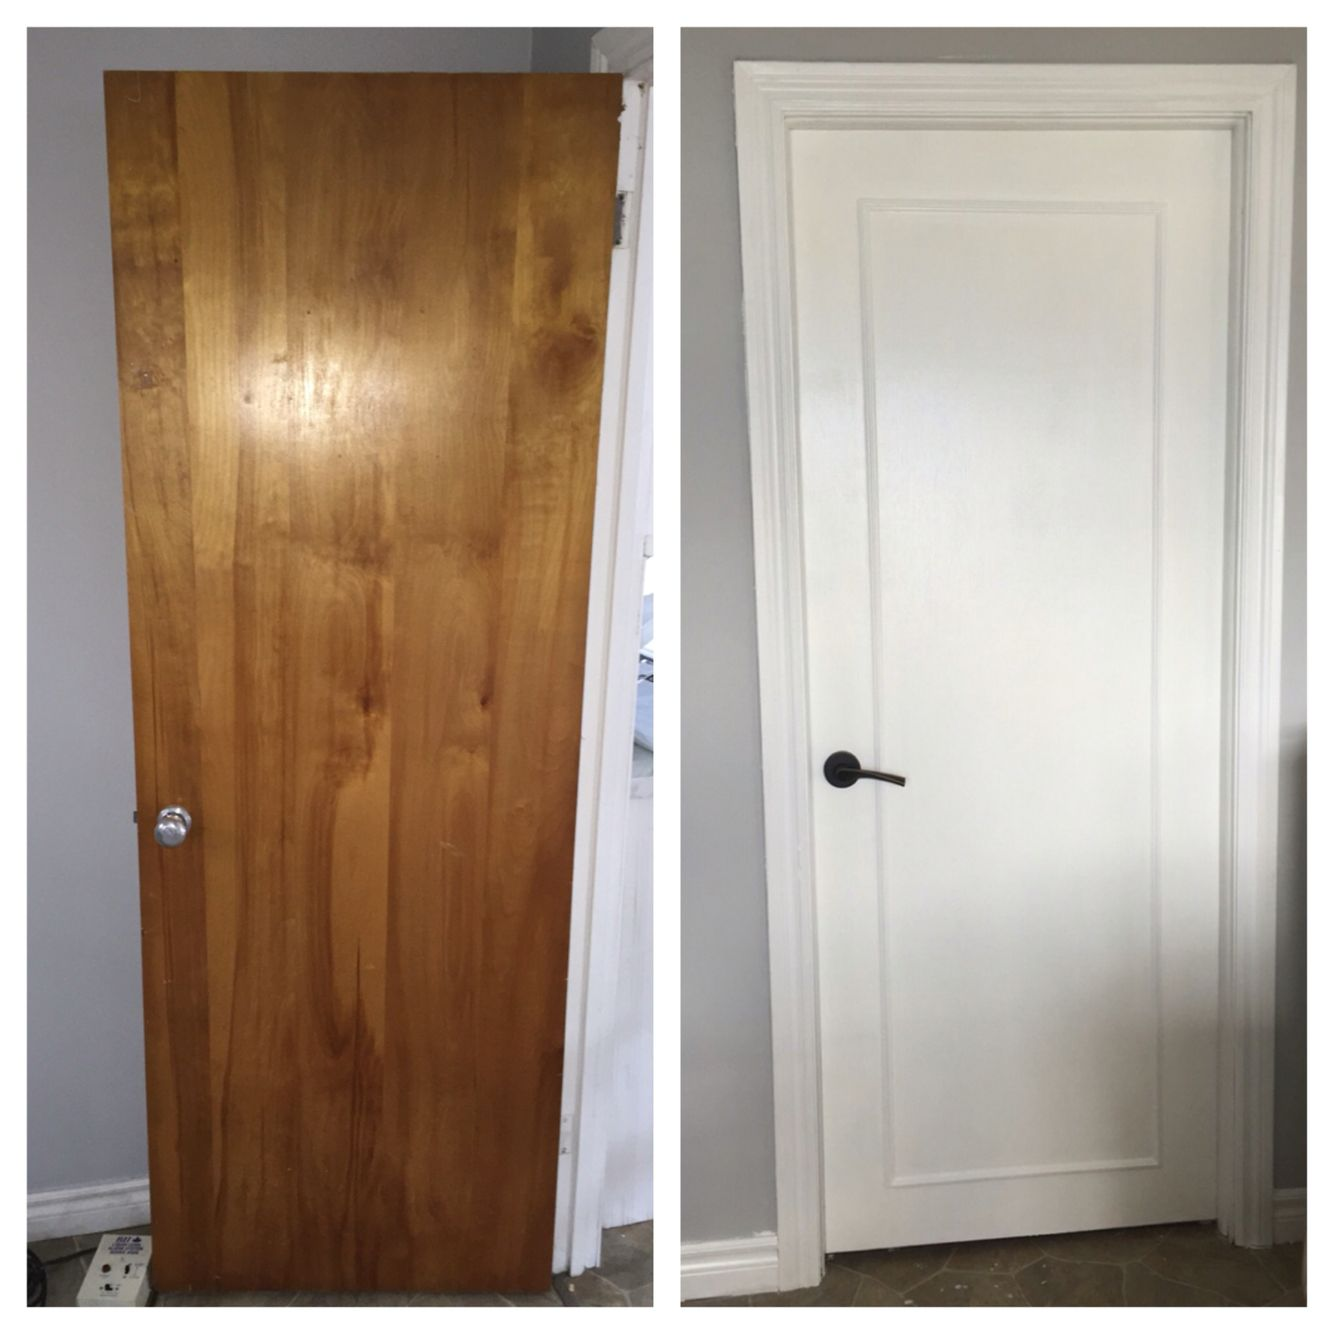 updated old wood doors to a modern look with wood trim